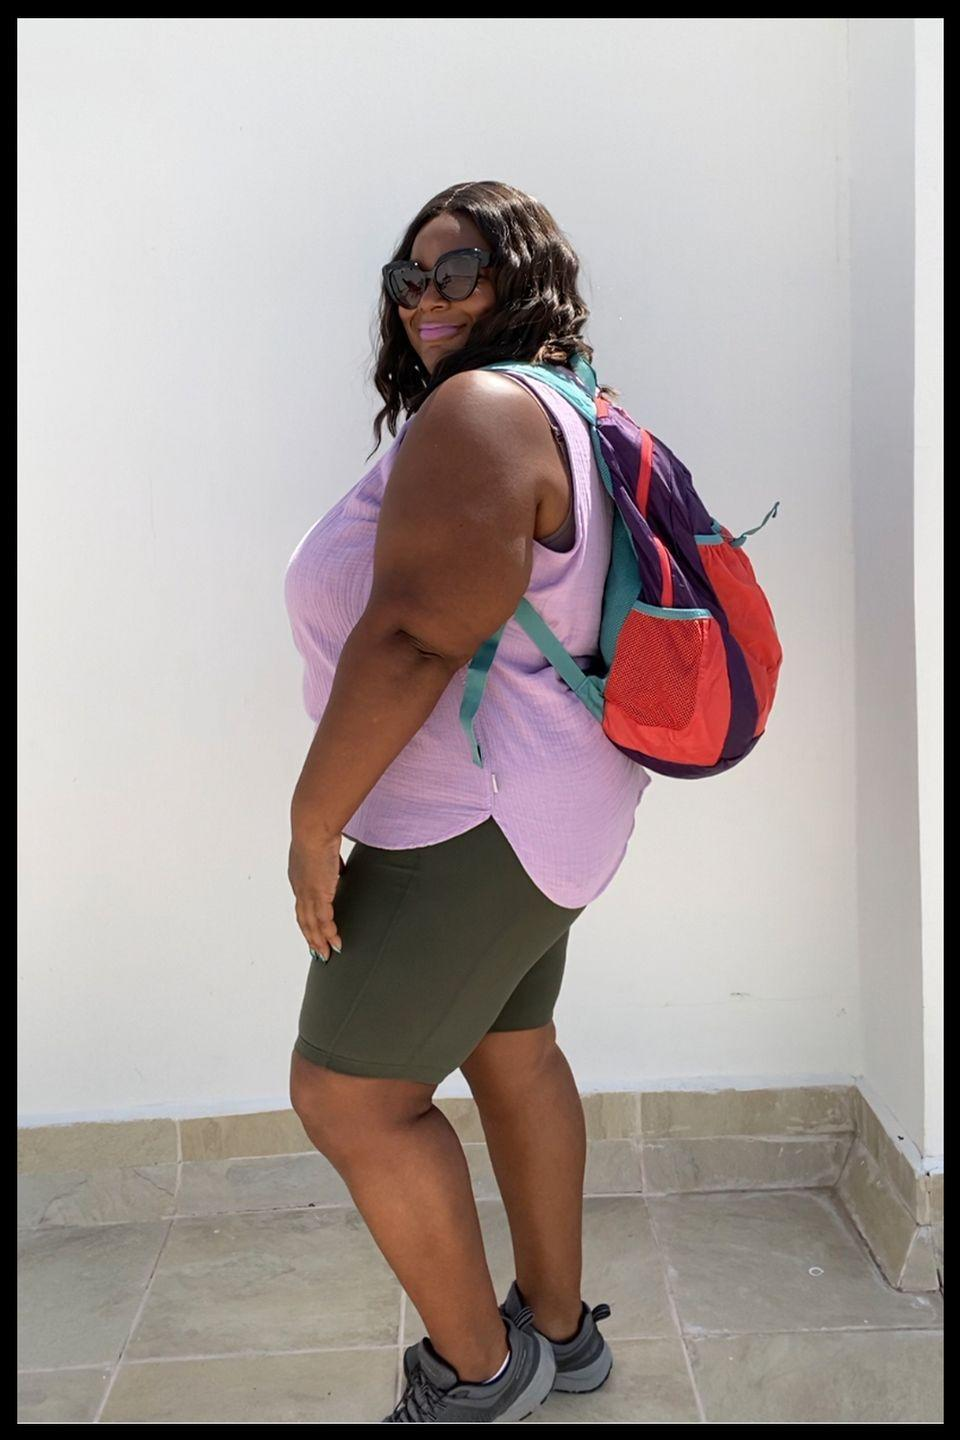 """<p>""""I love to travel with a backpack because I feel like it helps with my posture and balance and I'm newly obsessed with the Eddie Bauer Stowaway Packable 30L Pack. As a plus-size traveler my clothes take up more space, so I rarely travel with just a carry-on. Some of the new airline rules are making the free carry-on bag a thing of the past. I used to bring a roller luggage as my carry-on but some airlines (United) are only allowing a free personal item and charge a fee for anything more. Which is why my Eddie Bauer Stowaway Packable 30L Pack is perfect! Not only can it easily carry my laptop, magazines, a book, my toiletries, and a packing cube with a change of clothes in the main compartment, I can fit my snacks and face shield in the exterior stretch mesh pocket and a refillable water bottle in one of the two side mesh pockets. My favorite part is the hidden interior pocket on the back panel. It's the perfect place to put your passport, boarding pass, pen, and phone. This hidden pocket is also the pouch that holds the entire bag, so once you get to your destination and unpack this 30 liter backpack it folds and zips up into a small square."""" —<a href=""""https://www.instagram.com/fatgirlstraveling/?hl=en"""" rel=""""nofollow noopener"""" target=""""_blank"""" data-ylk=""""slk:@fatgirlstraveling"""" class=""""link rapid-noclick-resp"""">@fatgirlstraveling</a></p>"""